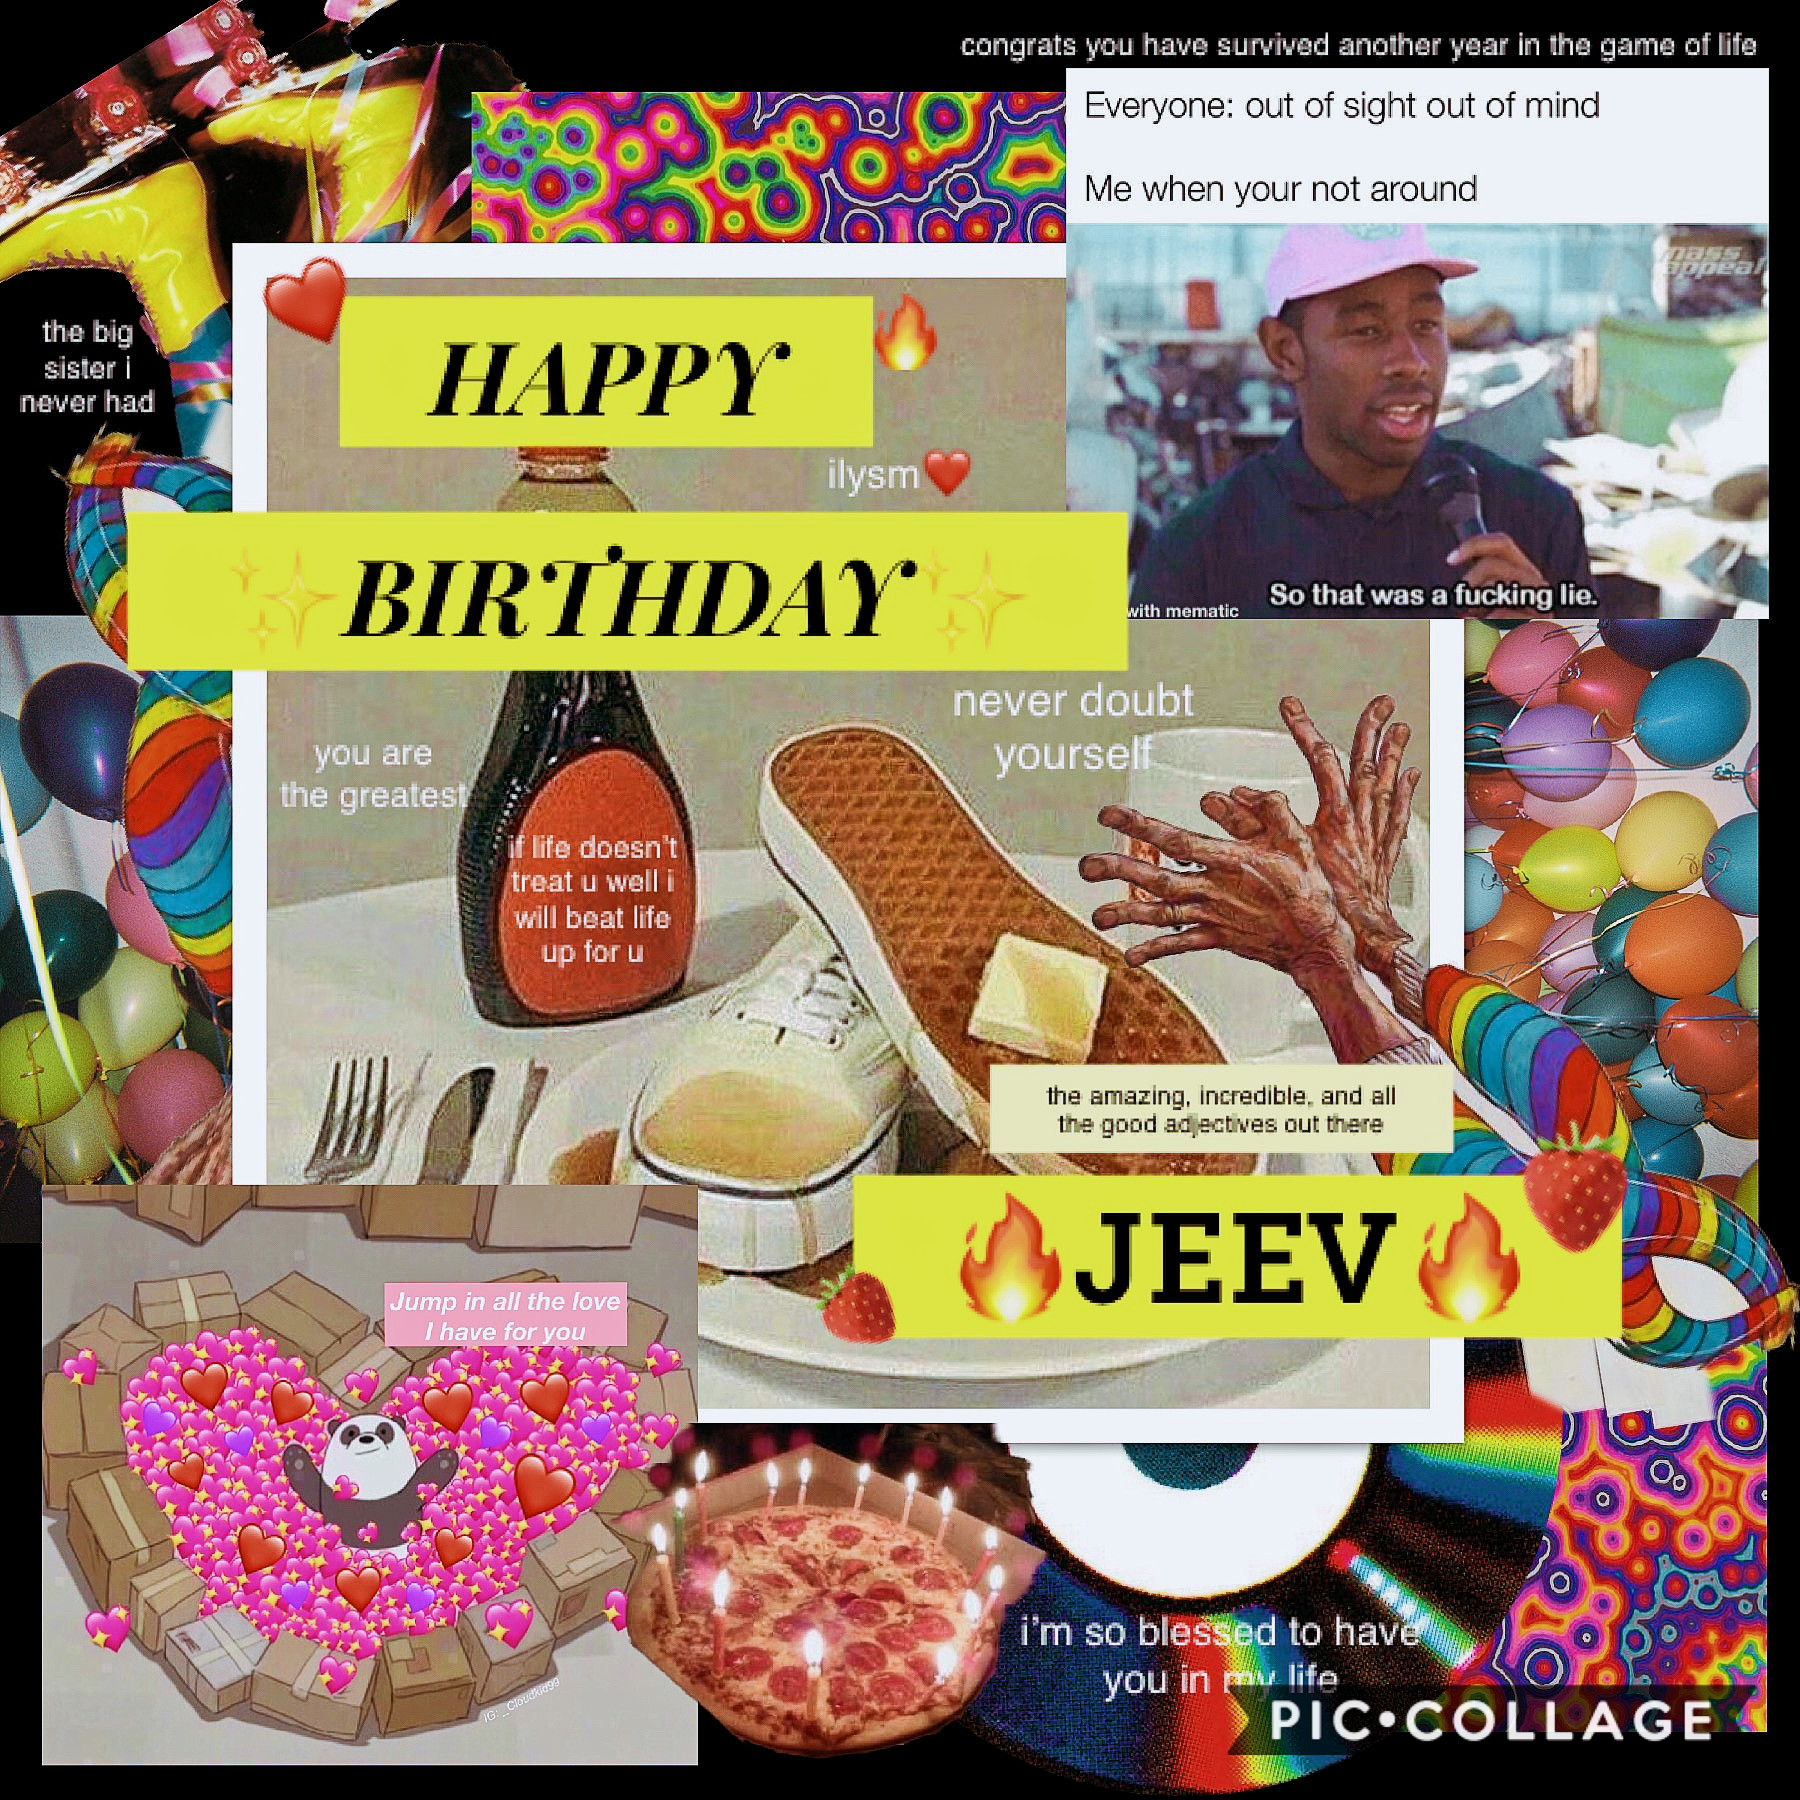 🍓😌to the legend that is jeev🙌🏽✨  wish her happy birthday or i'm setting you up with big ed   yes, the guy from 90 day fiancé   yes, the guy who puts mayo in his hair  yes, you will wish her happy birthday